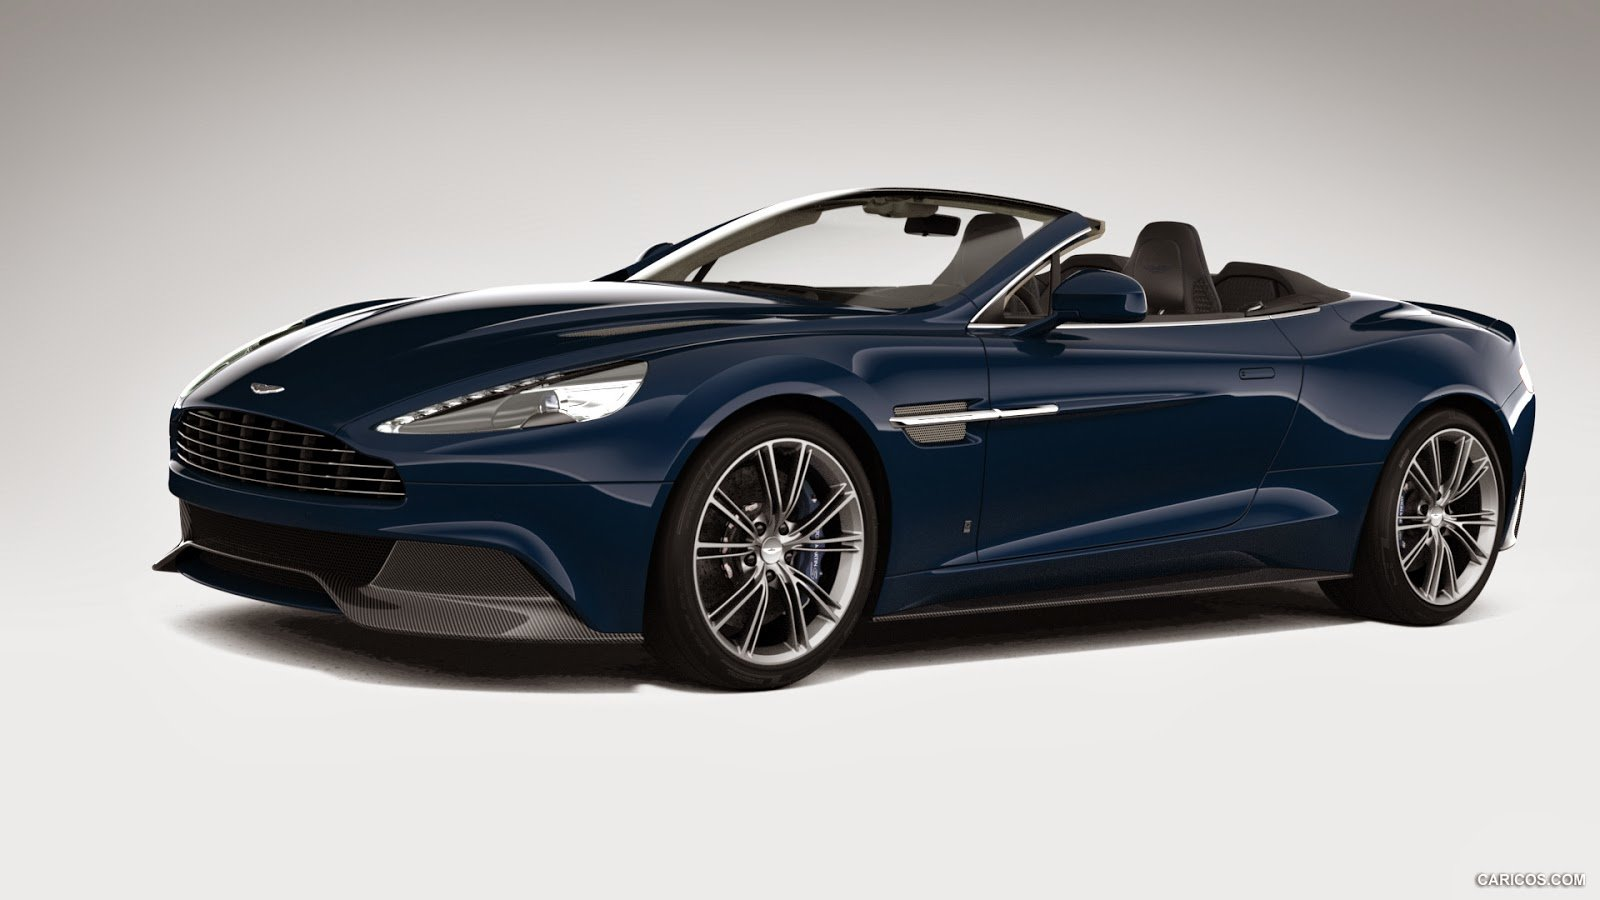 Latest Aston Martin Hd Wallpapers Hd Wallpapers Blog Free Download